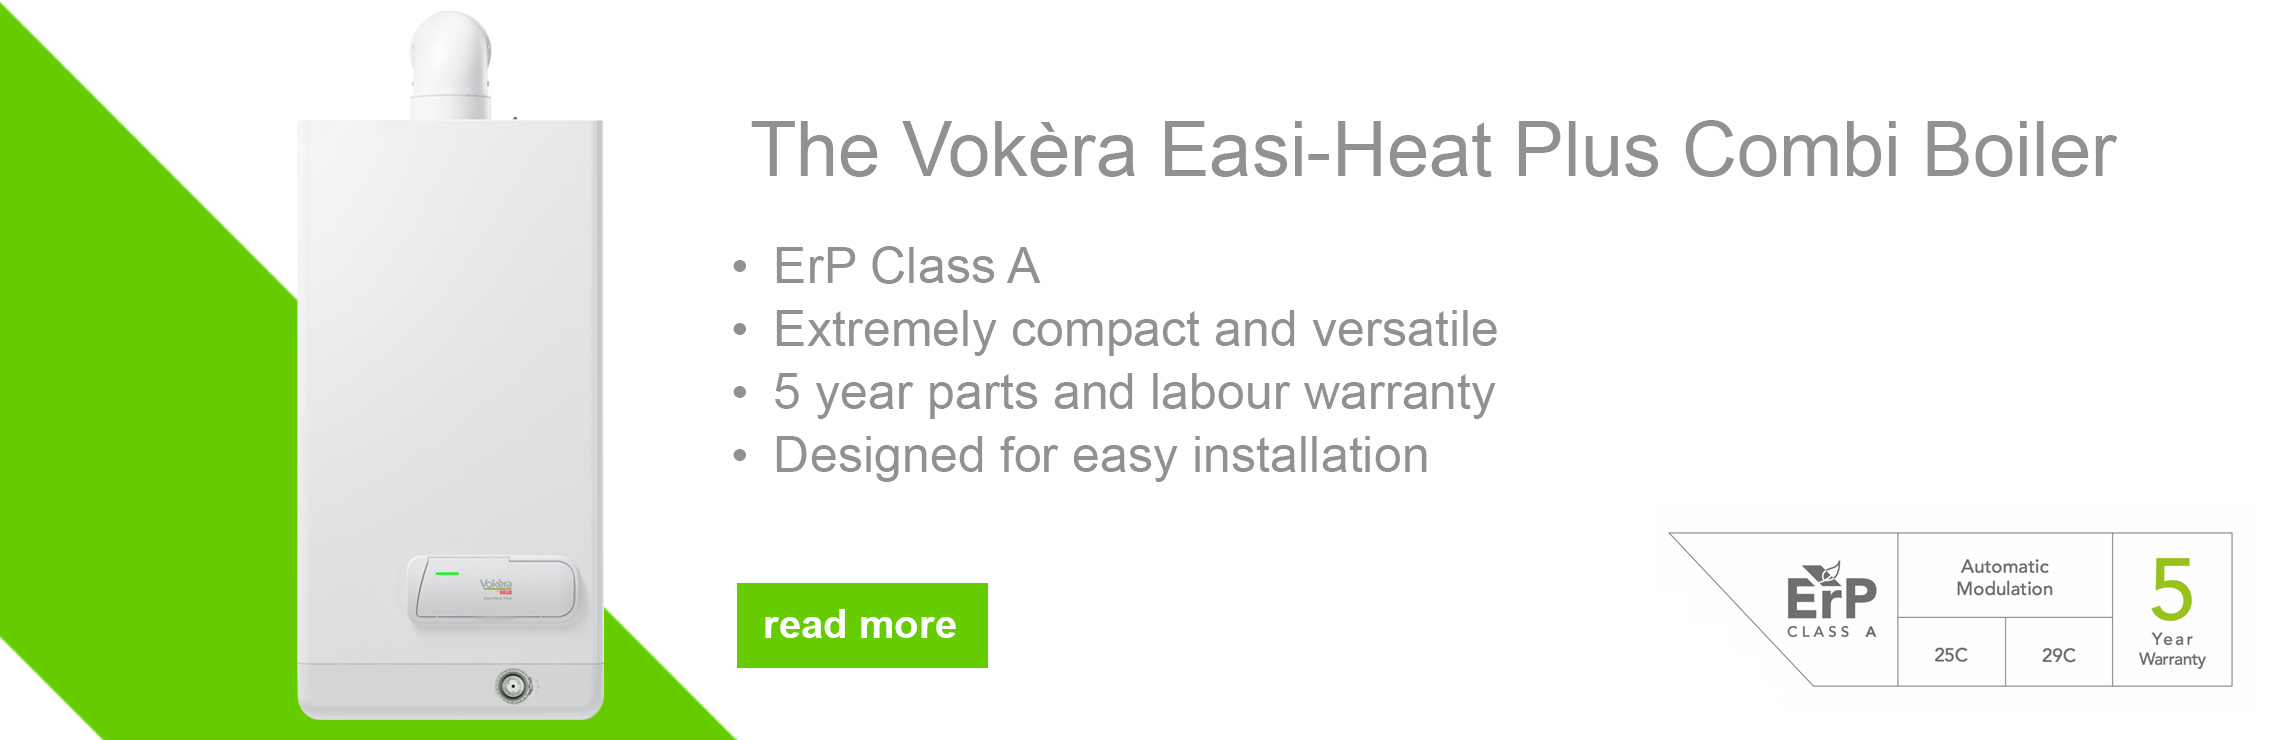 Introducing the Vokèra Easi-Heat Plus